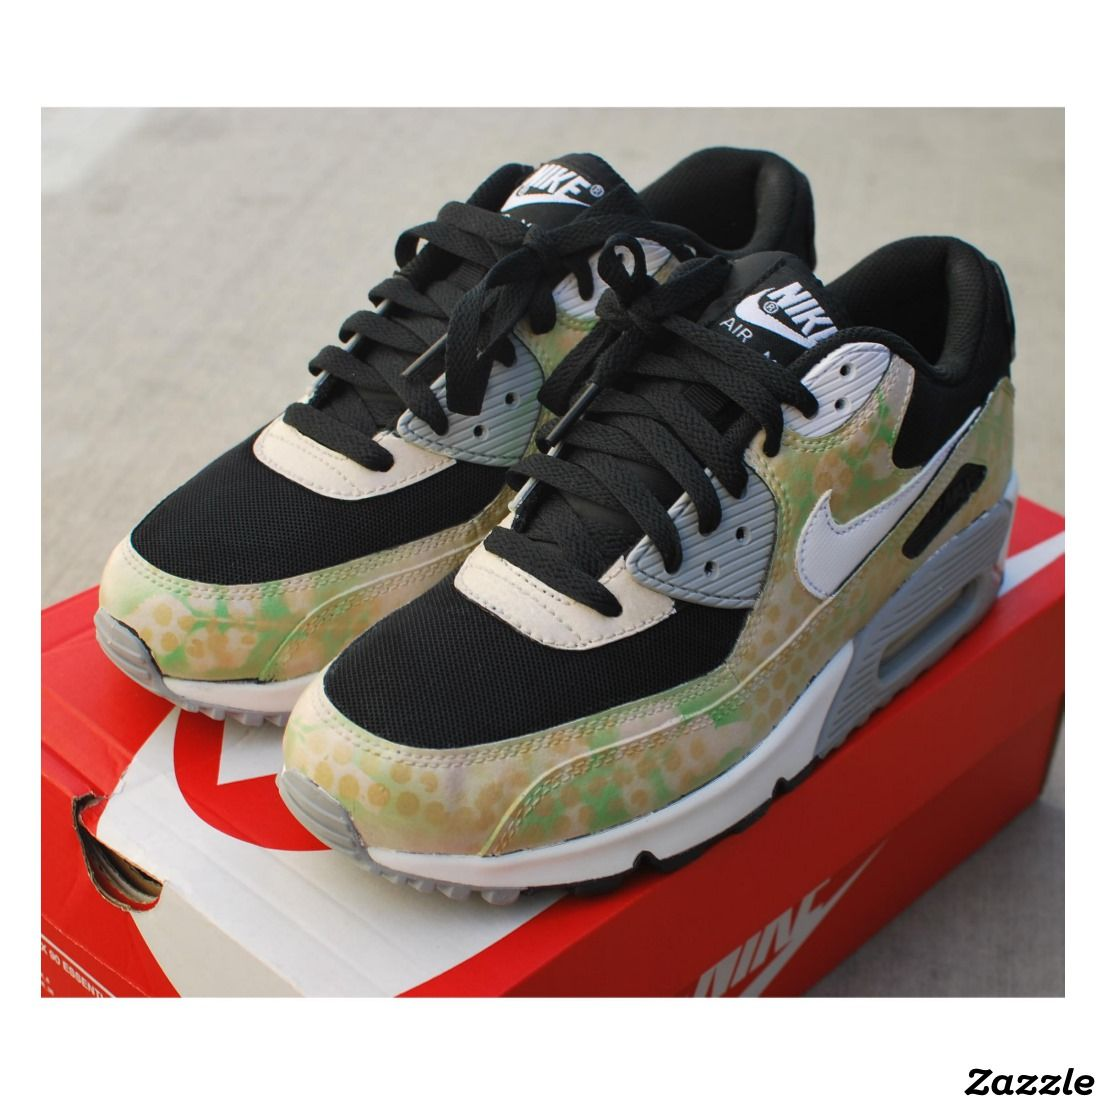 Hand Painted Camo Nike Air Max 90 Running Shoes Zazzle